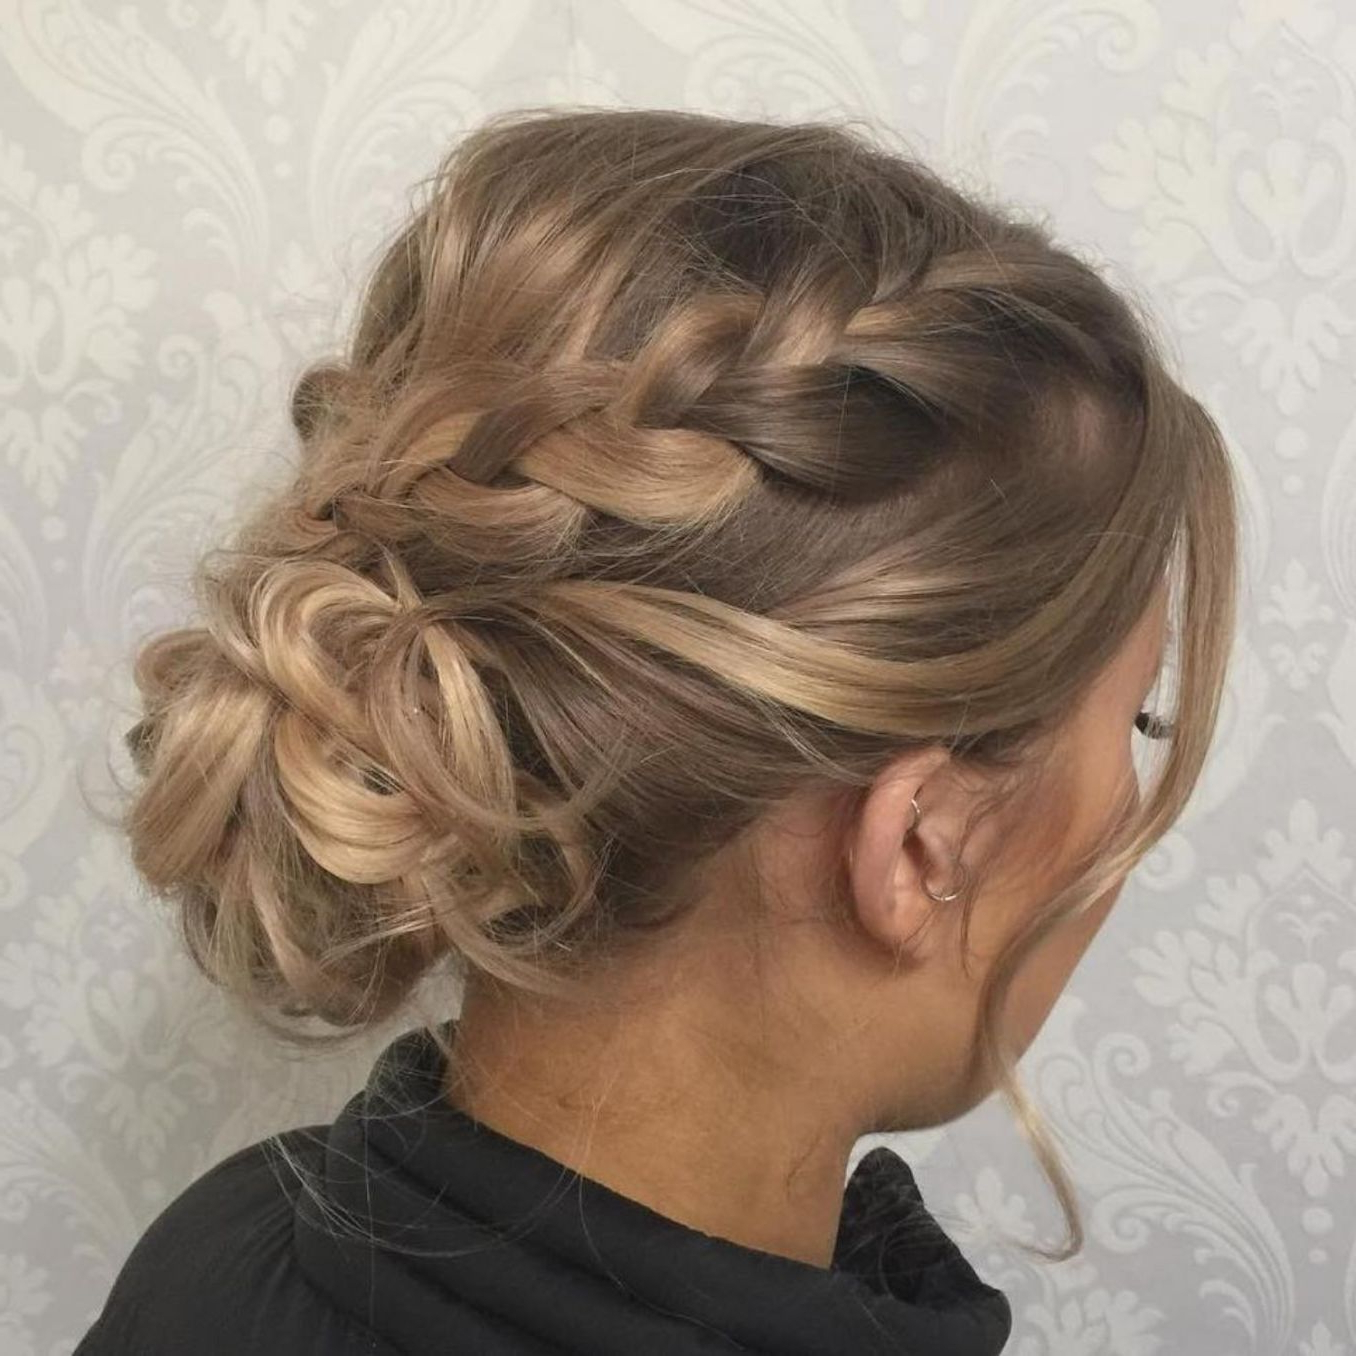 20 Inspirations of Low Messy Bun Wedding Hairstyles For Fine Hair